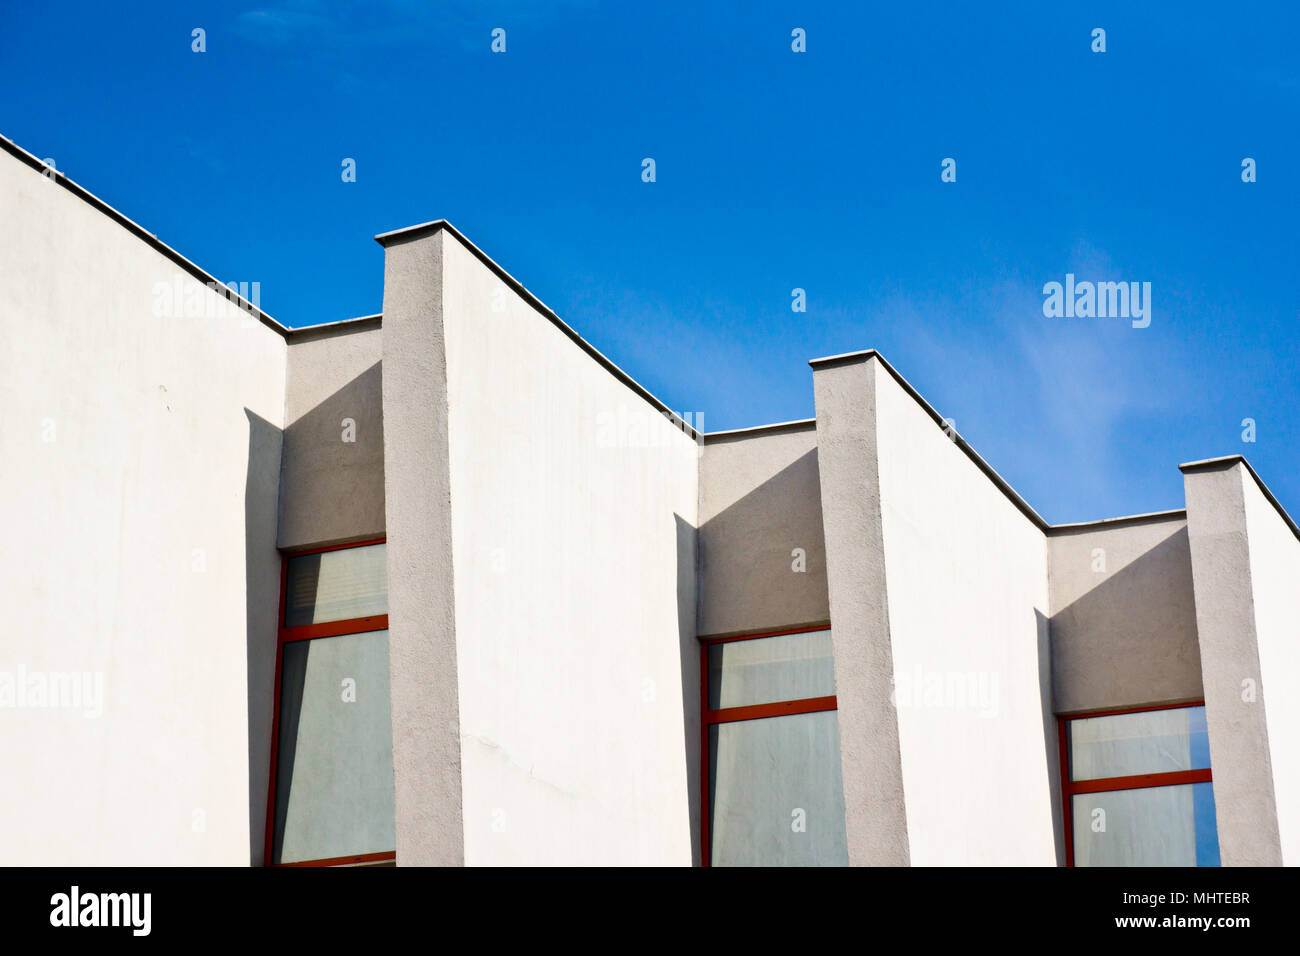 angular pattern of a building - Stock Image